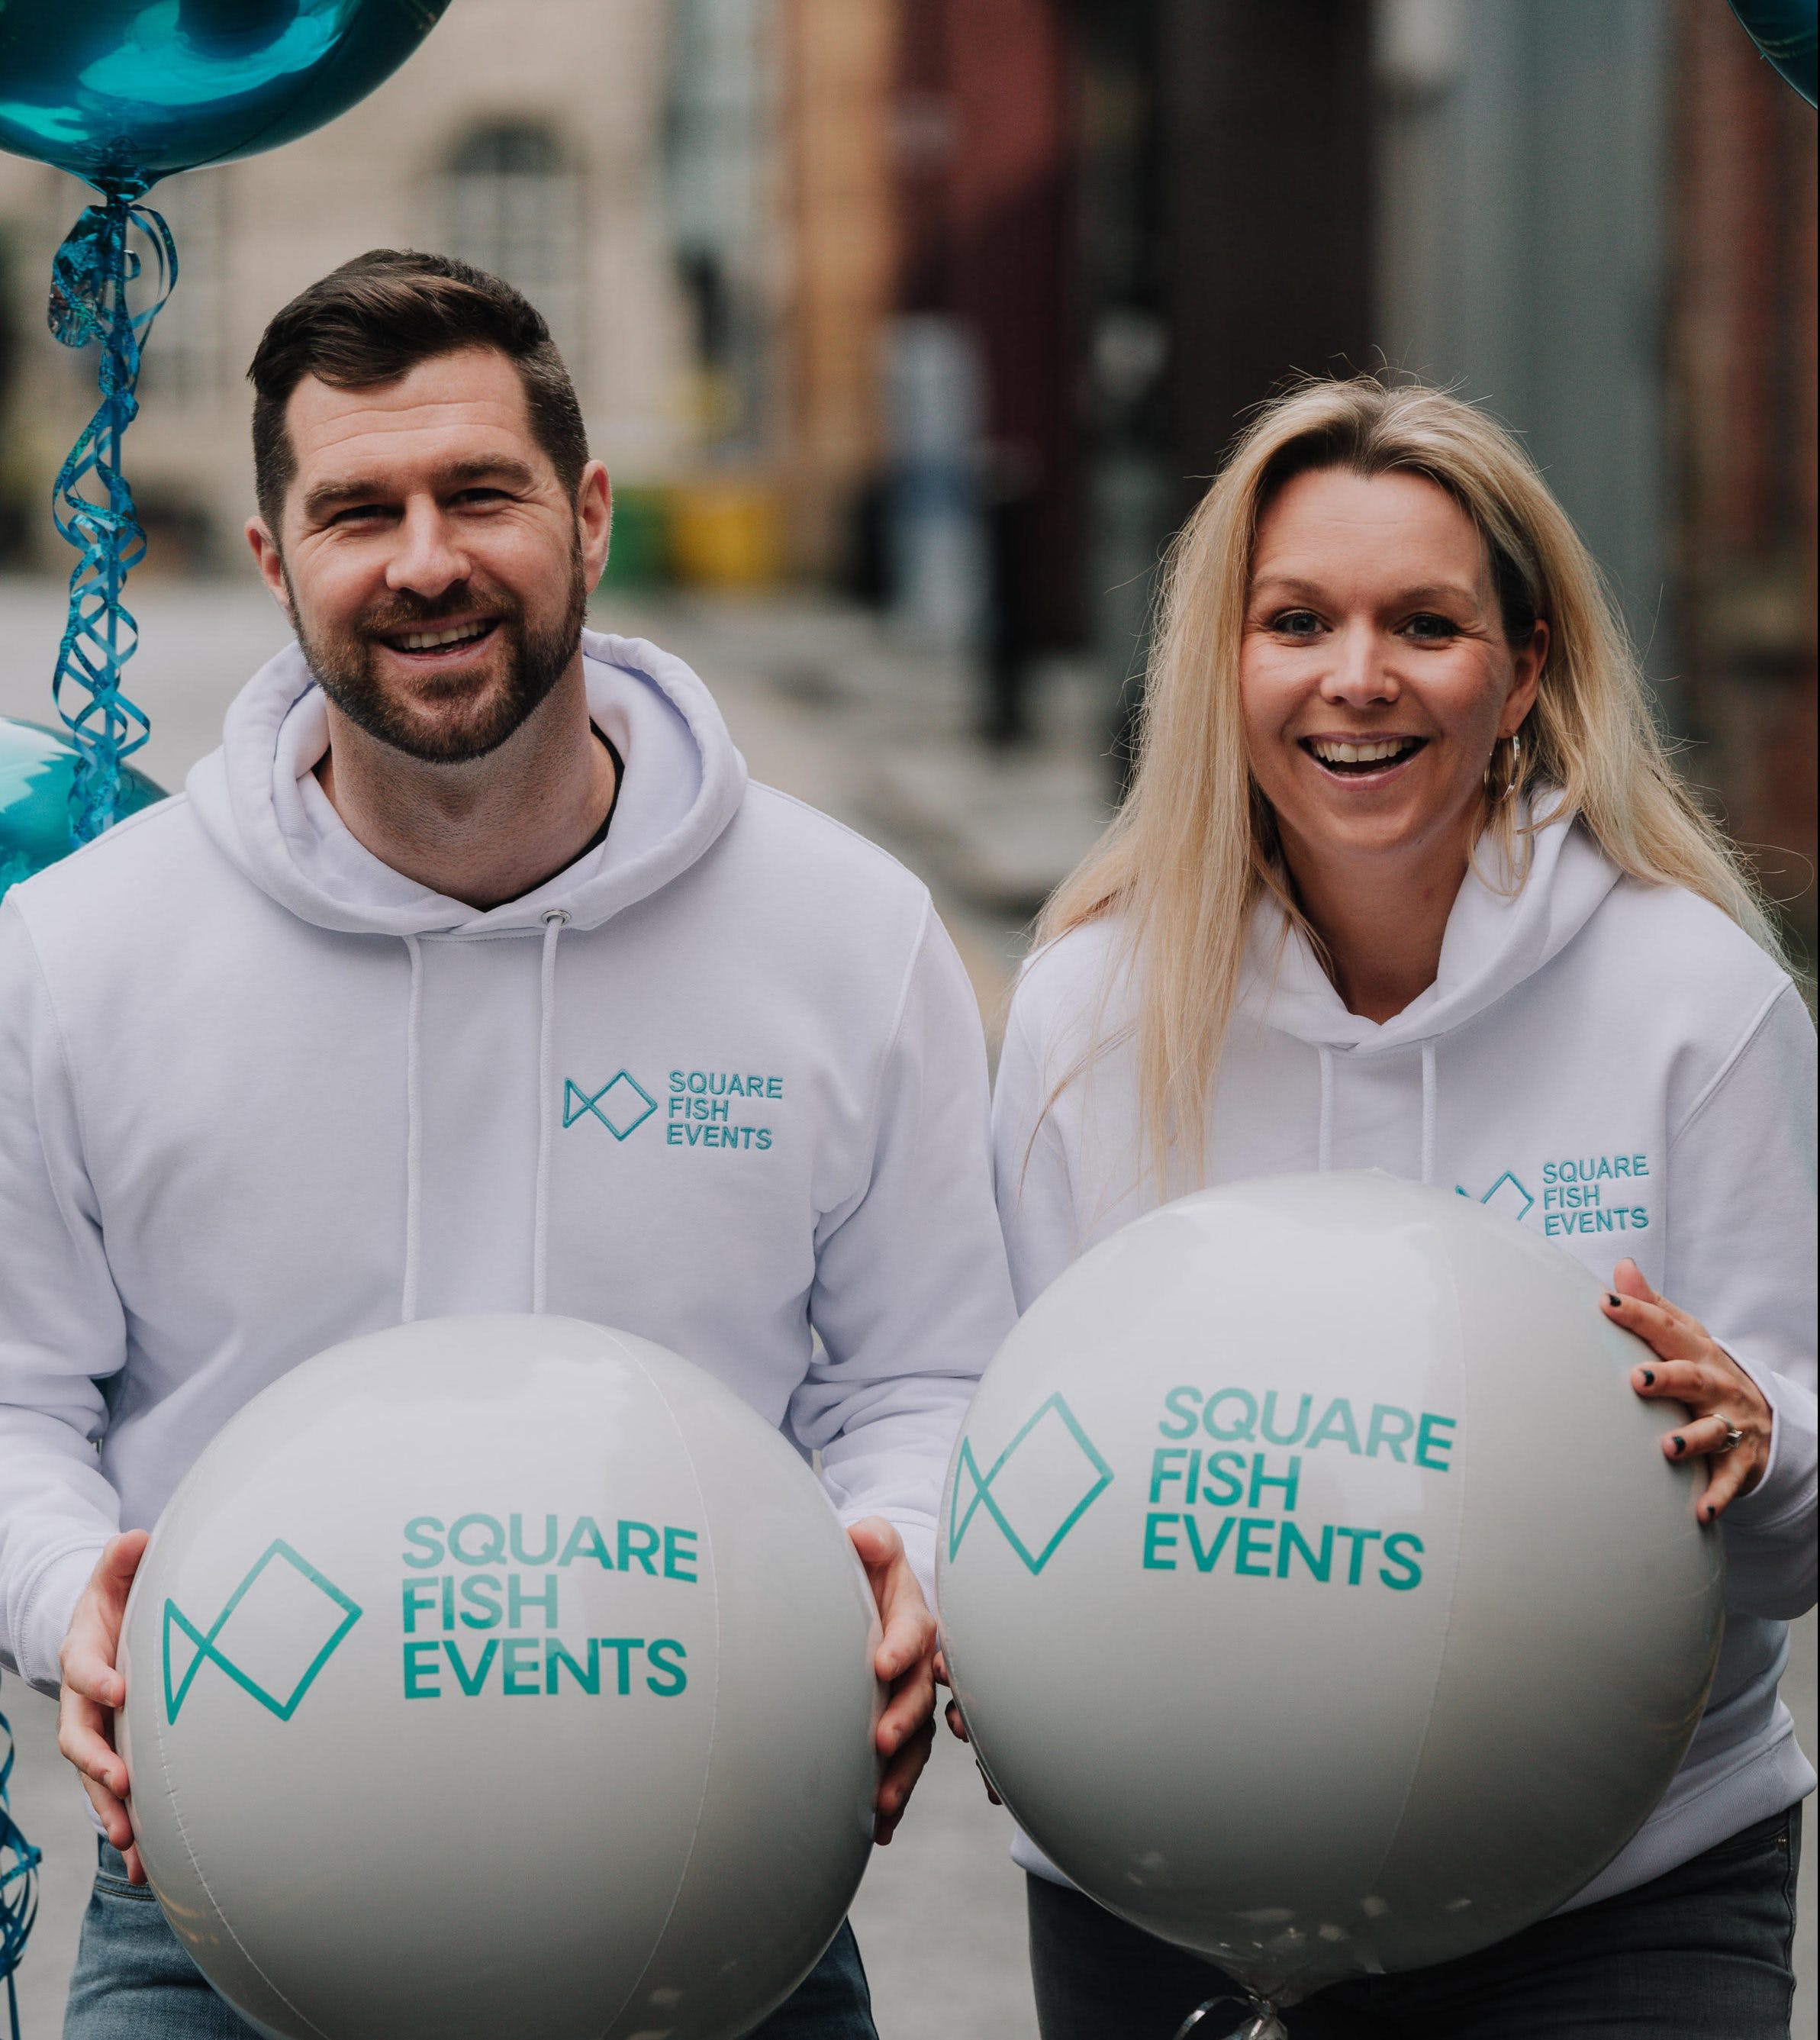 The owners of Square Fish Events